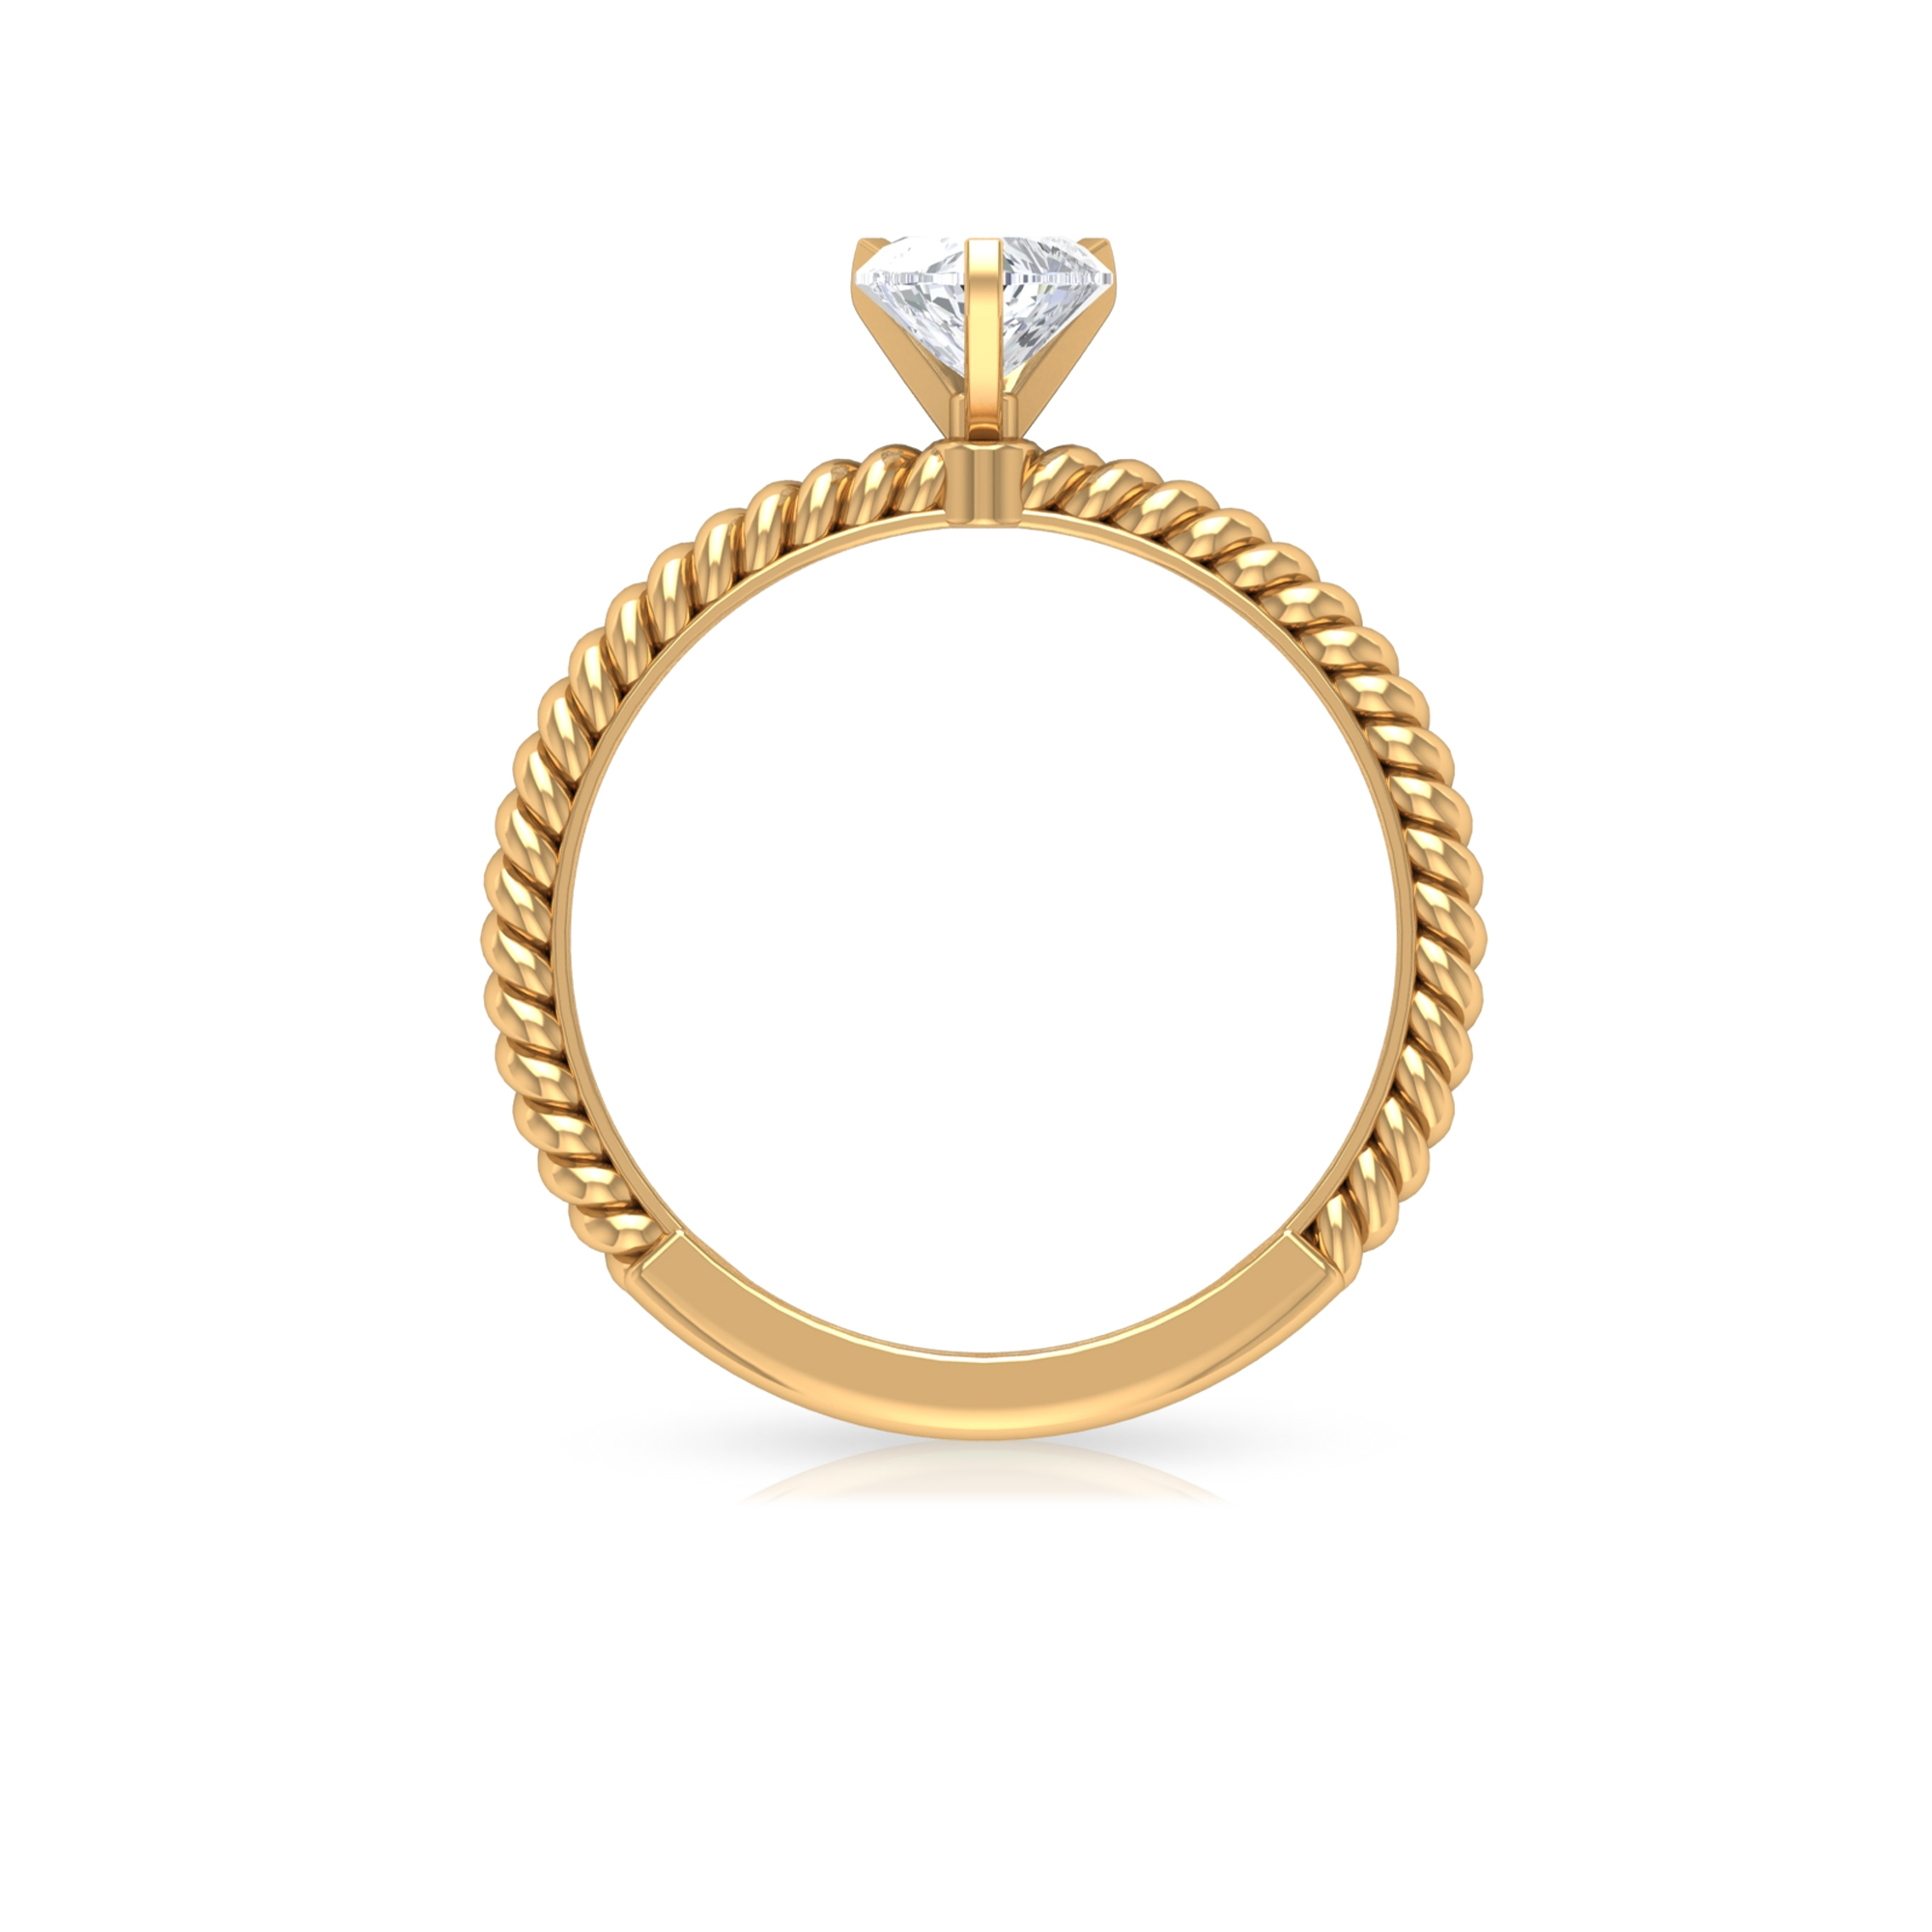 5.40 MM Heart Shape Diamond Solitaire Ring in 3 Prong Peg Head Setting with Twisted Rope Details